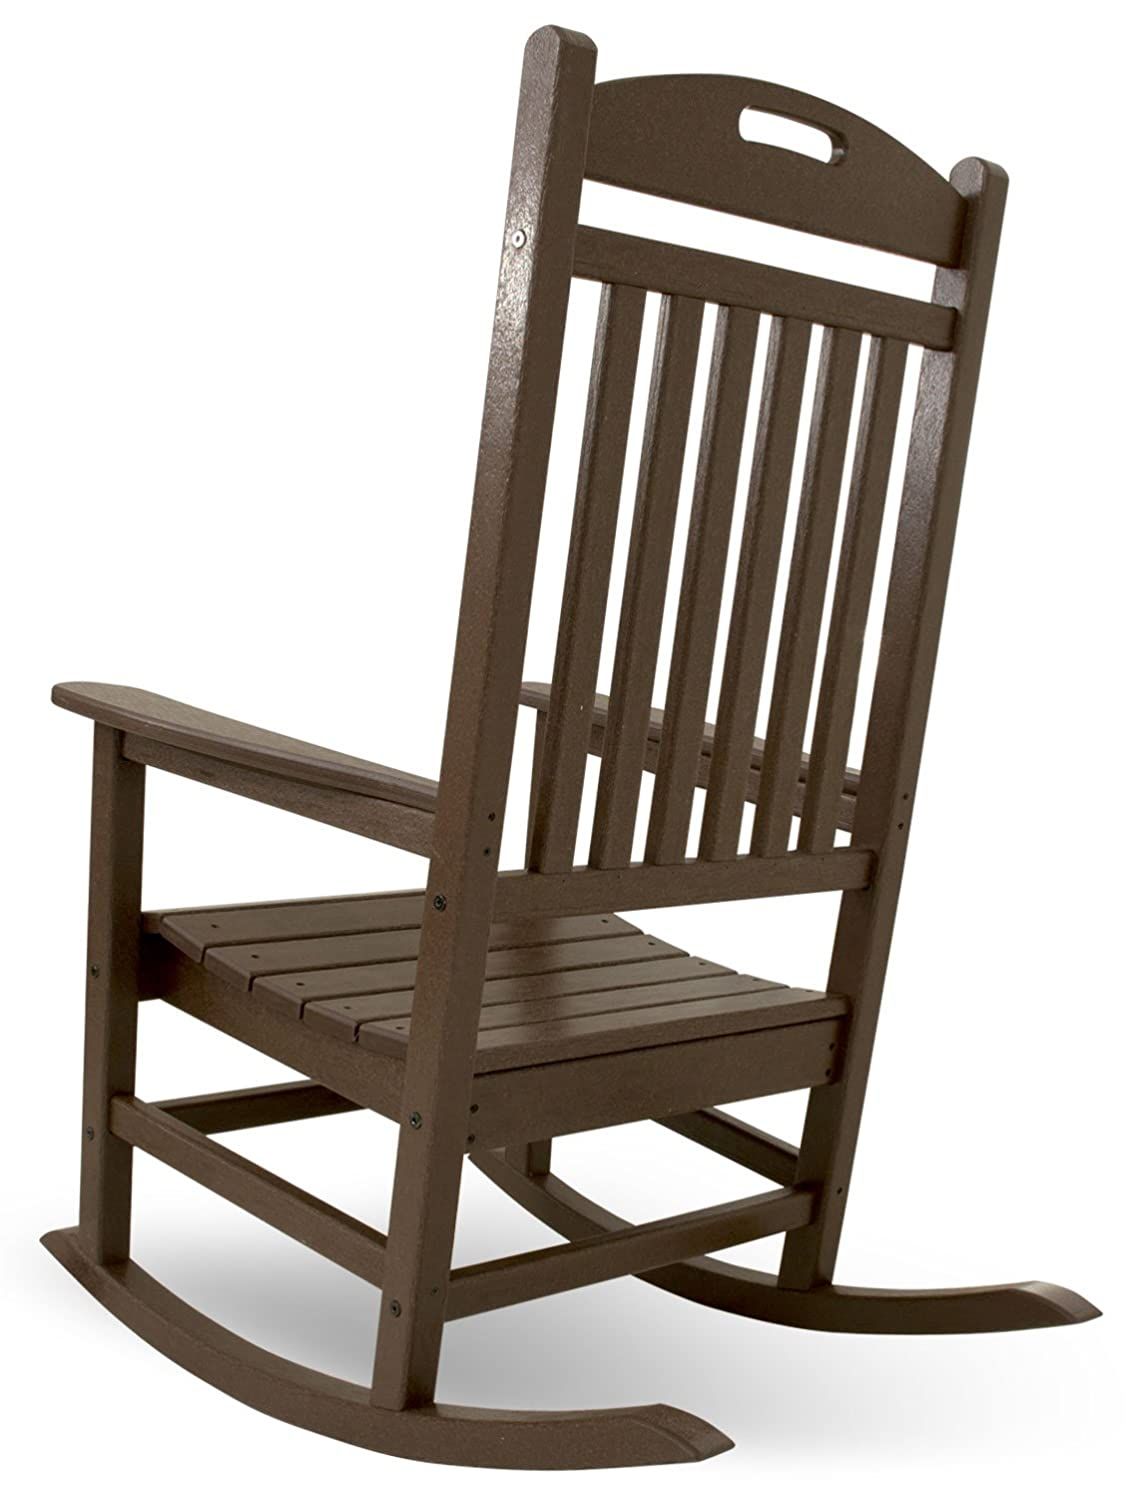 Outdoor furniture all chairs rocking chairs jefferson outdoor rocking - Amazon Com Trex Outdoor Furniture Yacht Club Rocker Chair Vintage Lantern Patio Rocking Chairs Patio Lawn Garden